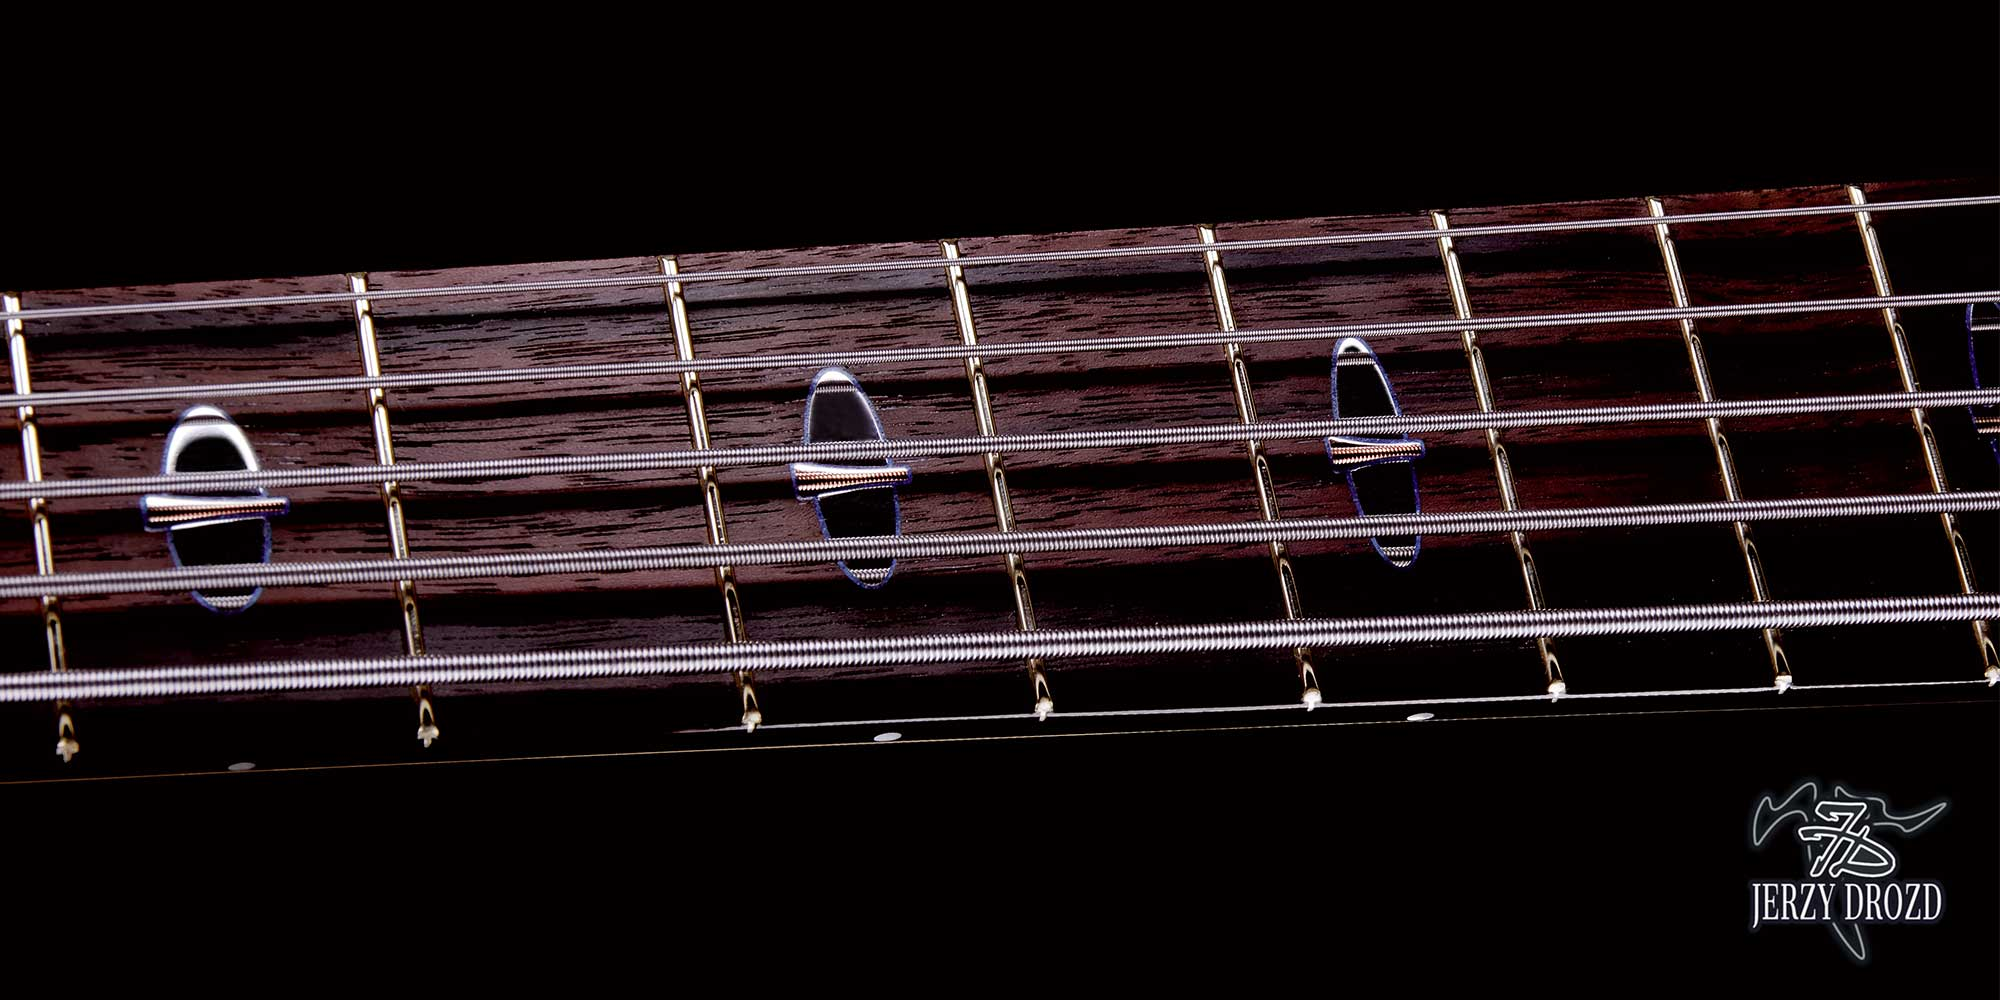 jerzy drozd siracusa bass guitar fretboard ornamented with silver rose gold inlay